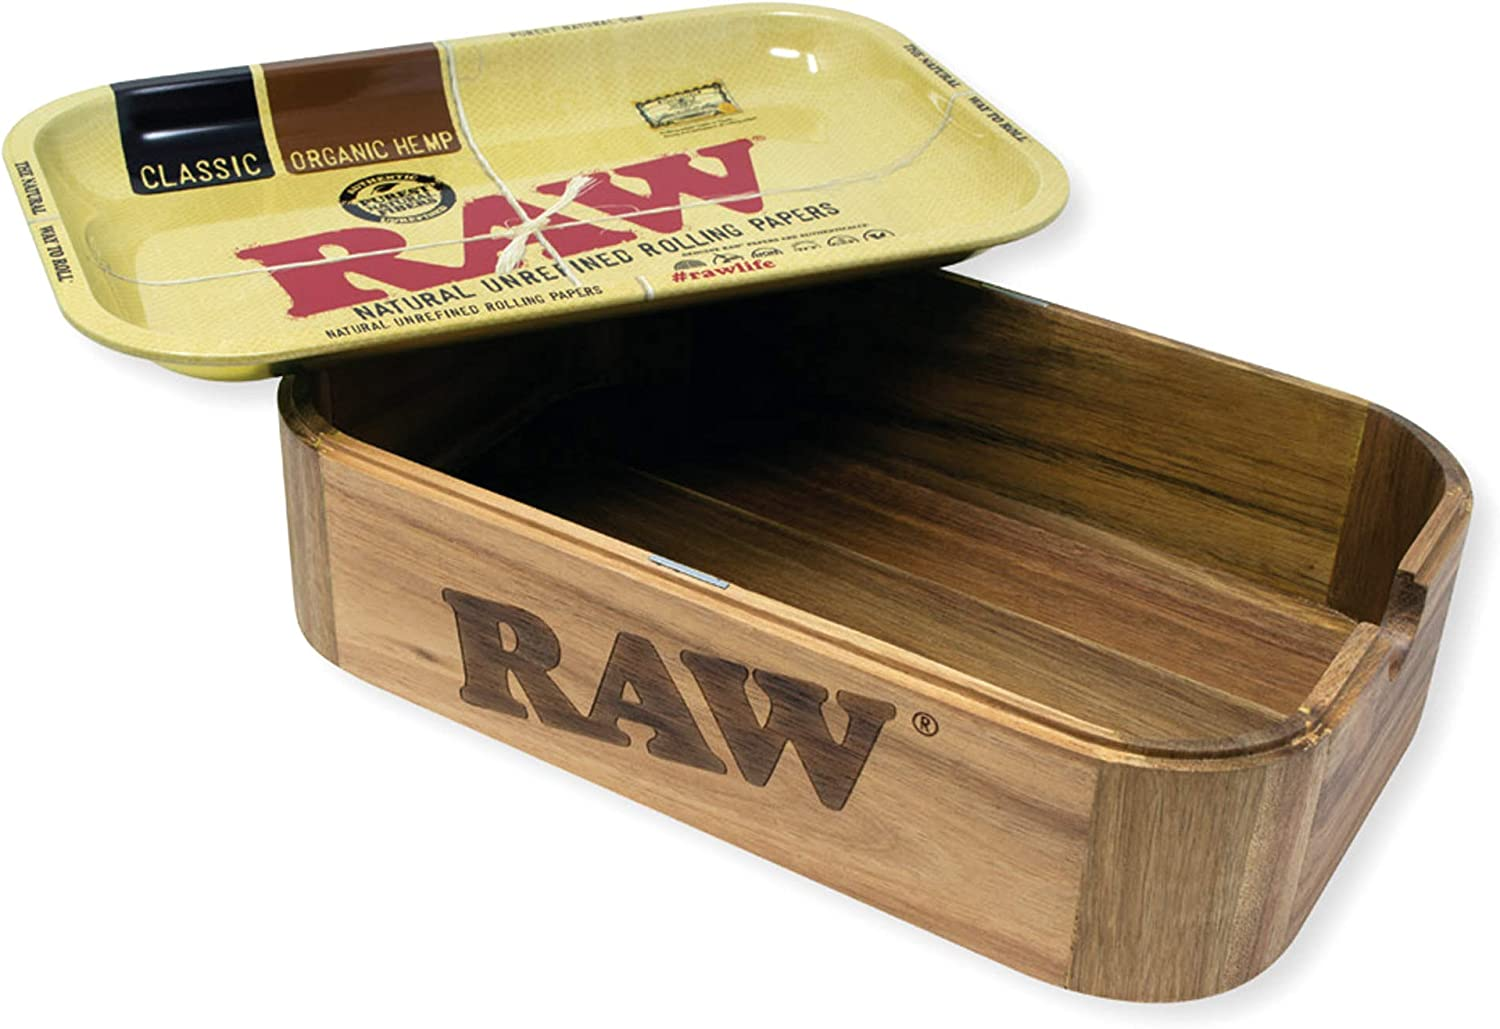 RAW 18870 Cache 28.0 x 17.5 x 7 cm-Wooden Box with Magnets and Metal Tray as Lid Wood